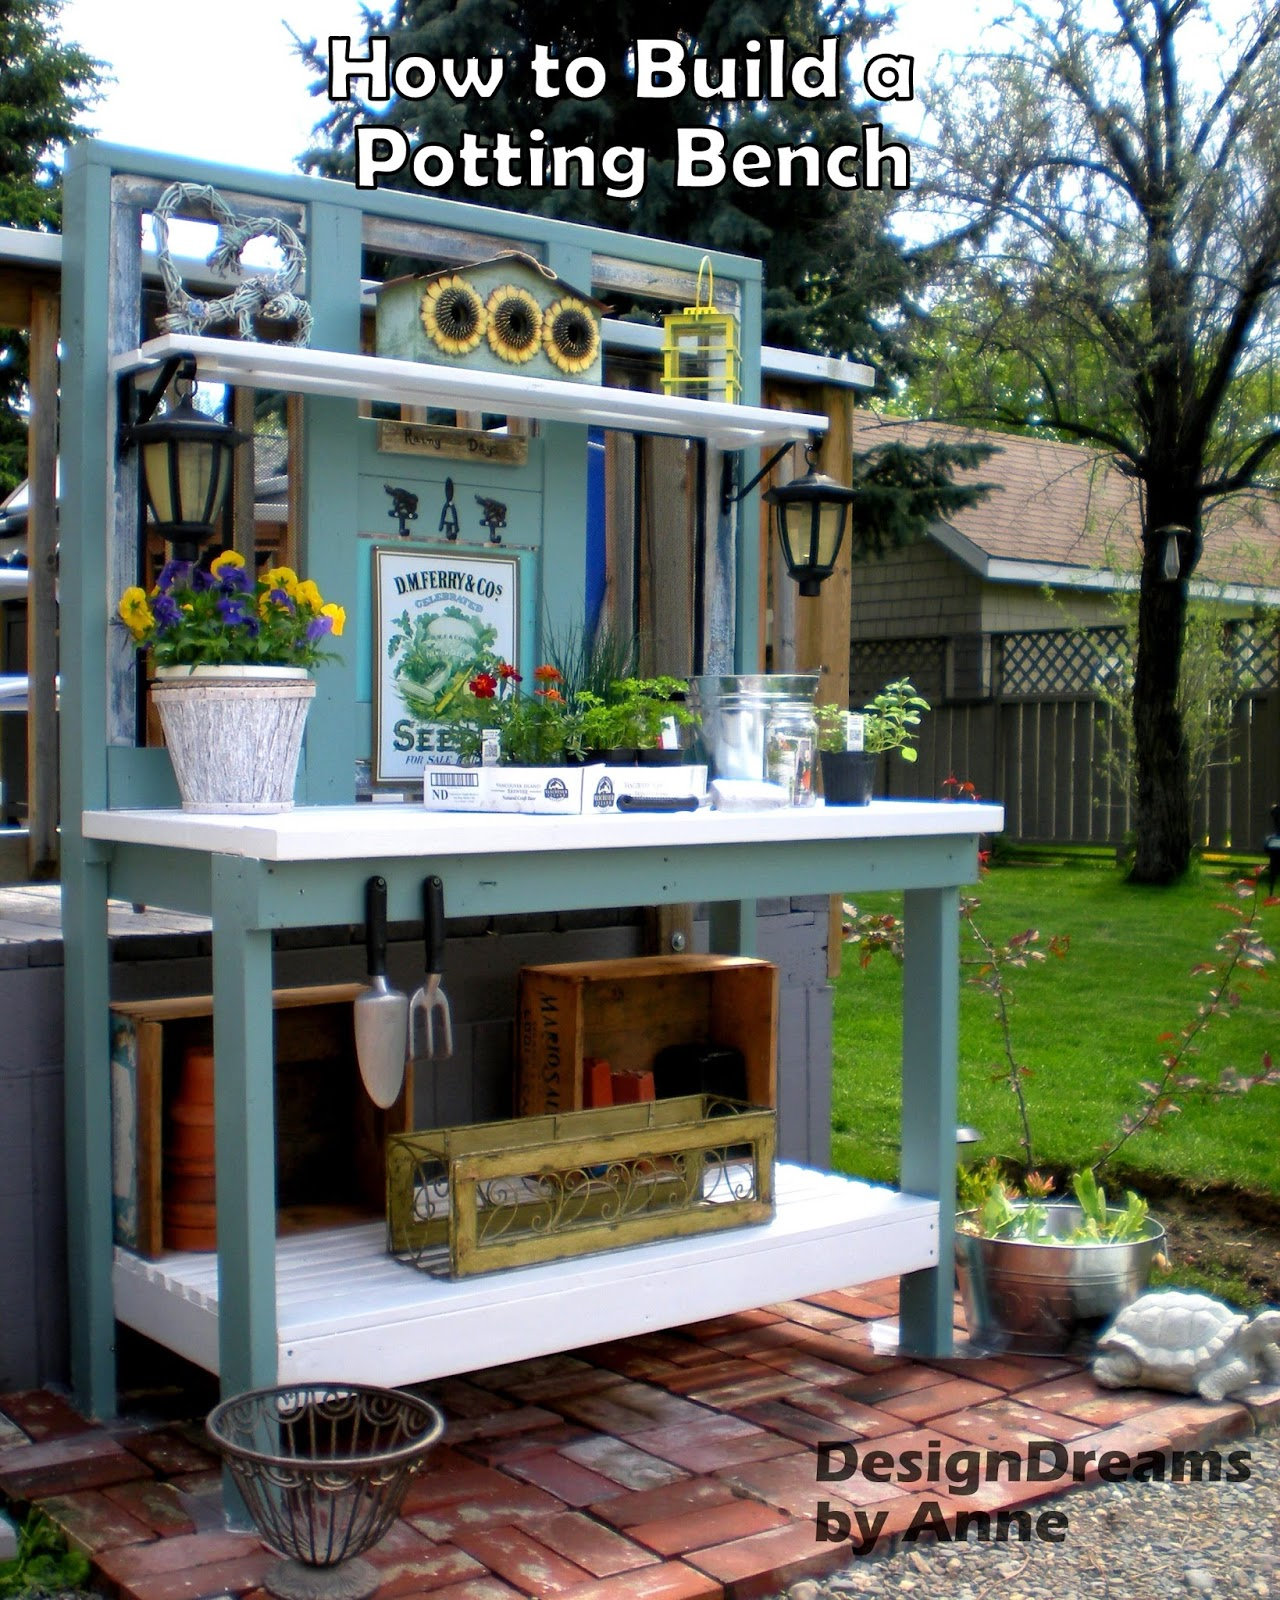 Designdreams By Anne How To Build A Potting Bench Part I